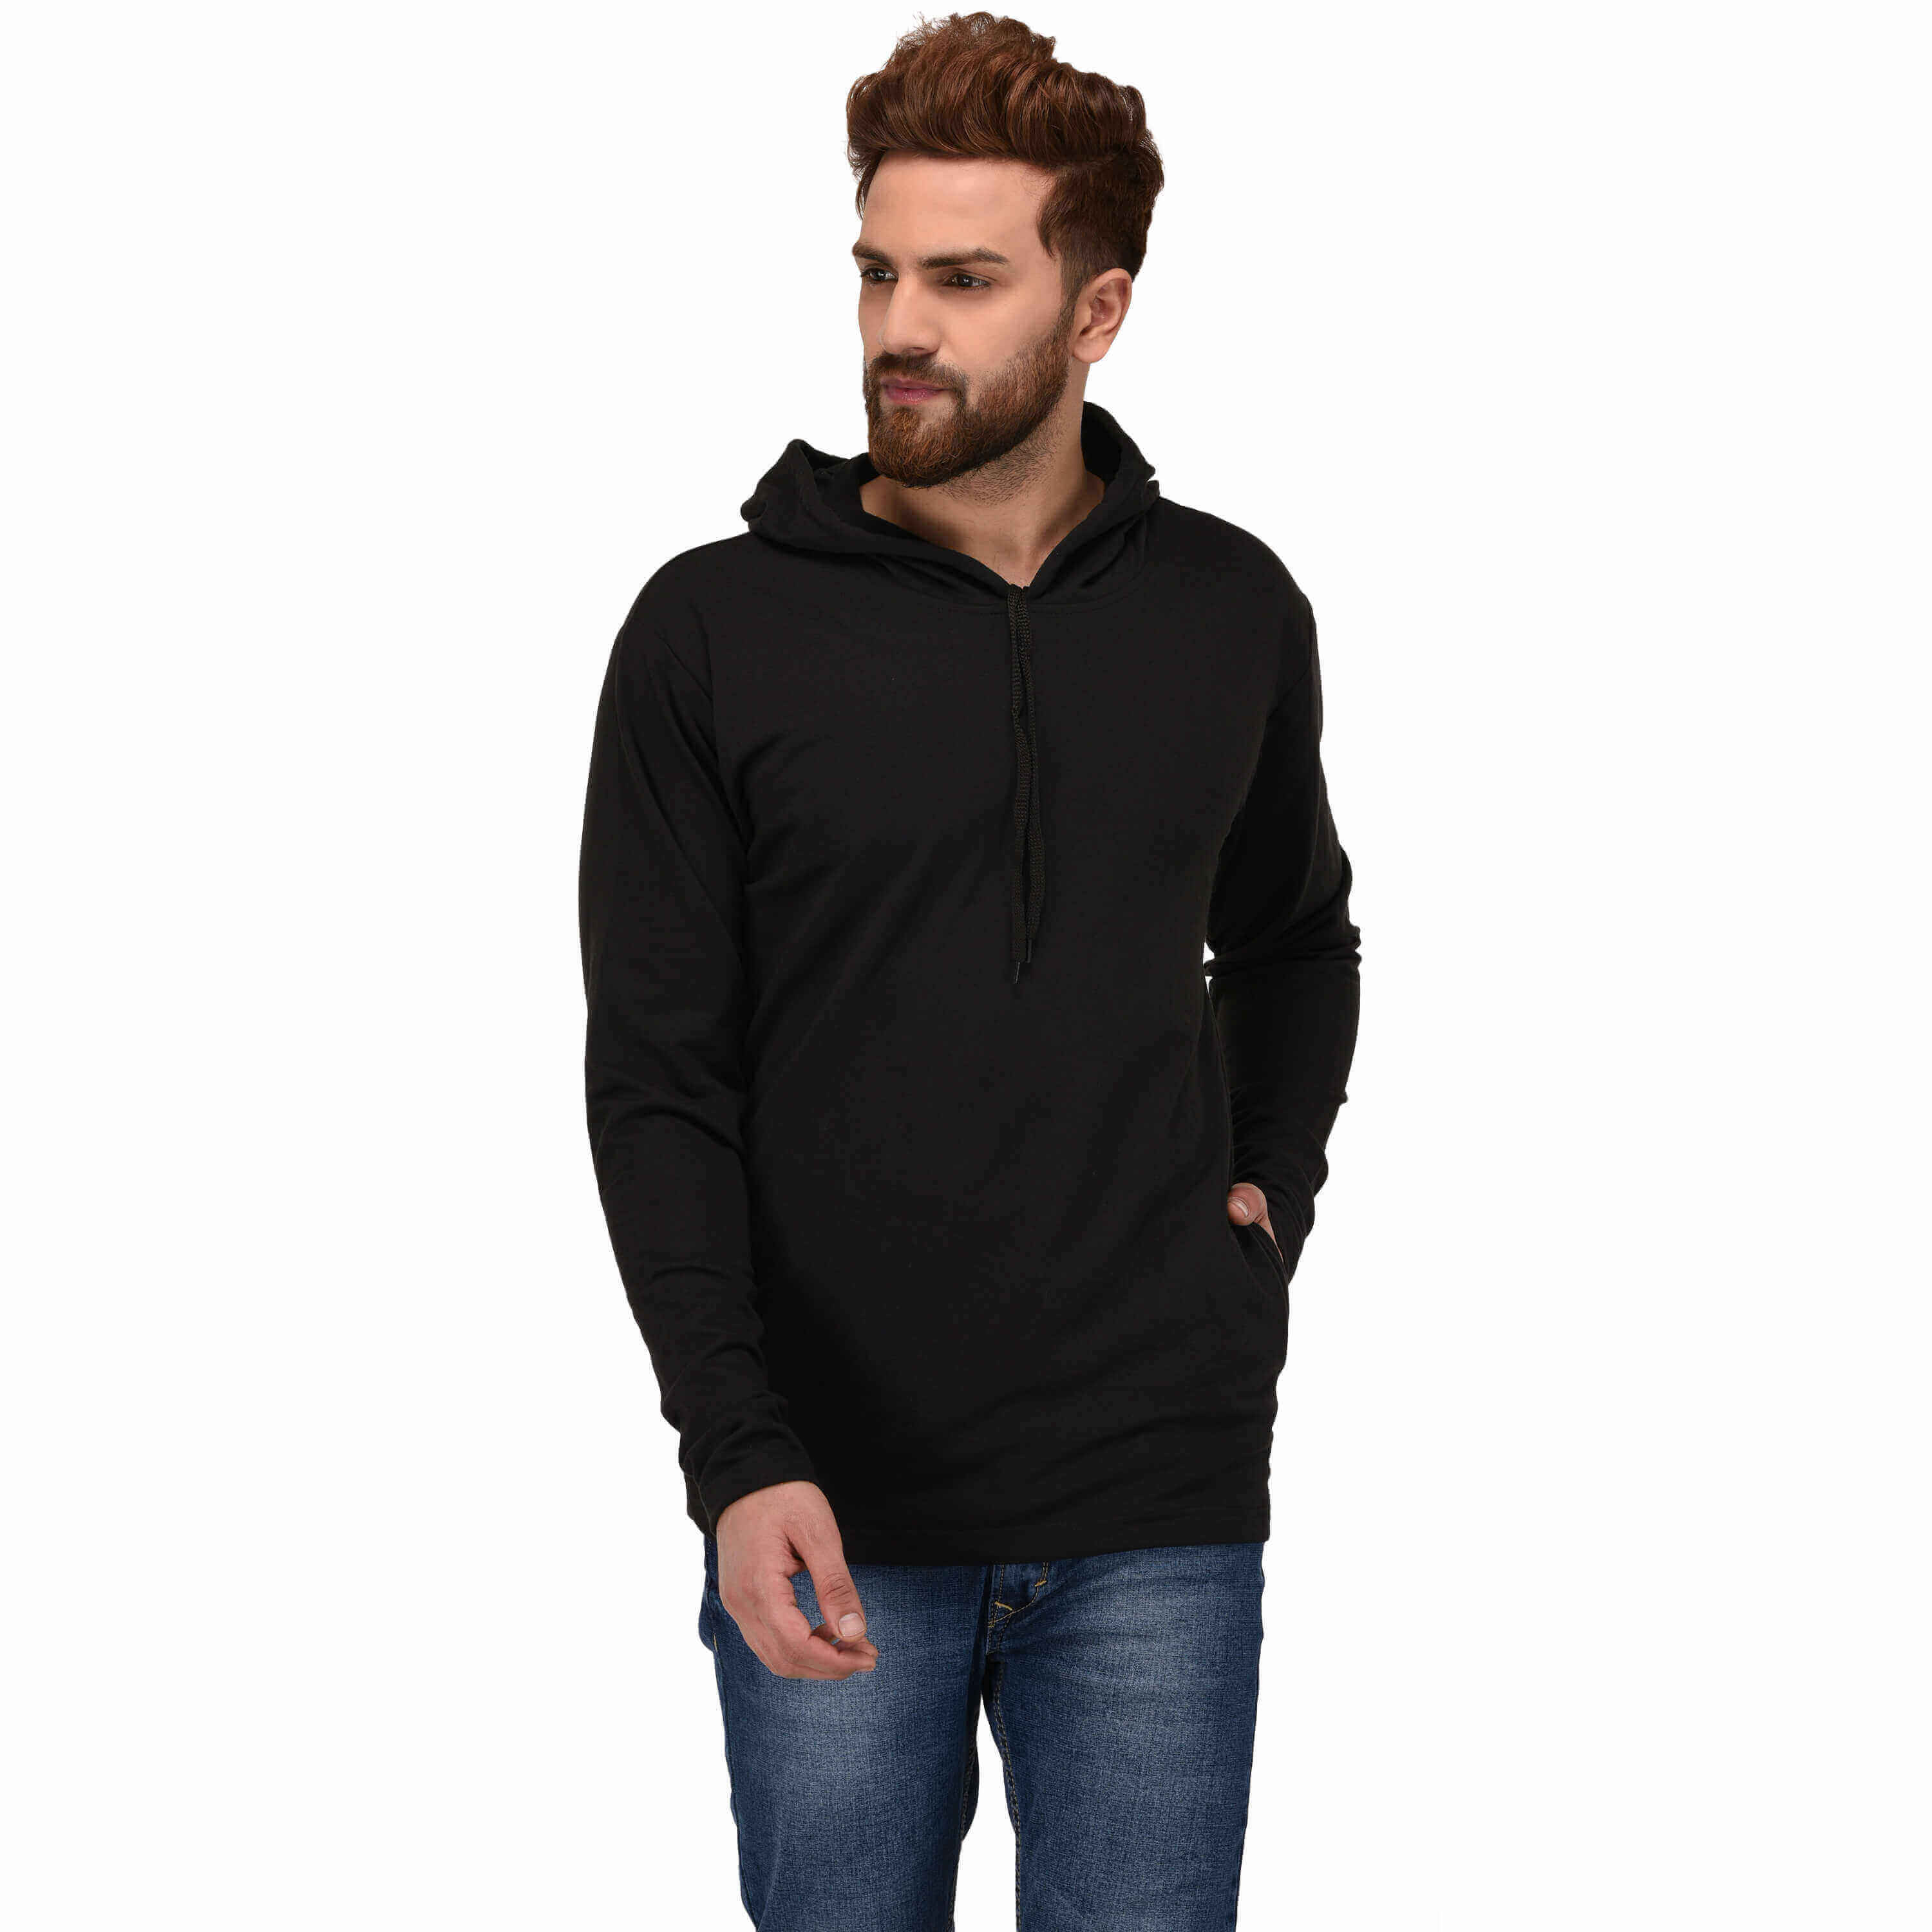 Sports Hoodies Manufacturers in United-states-of-america